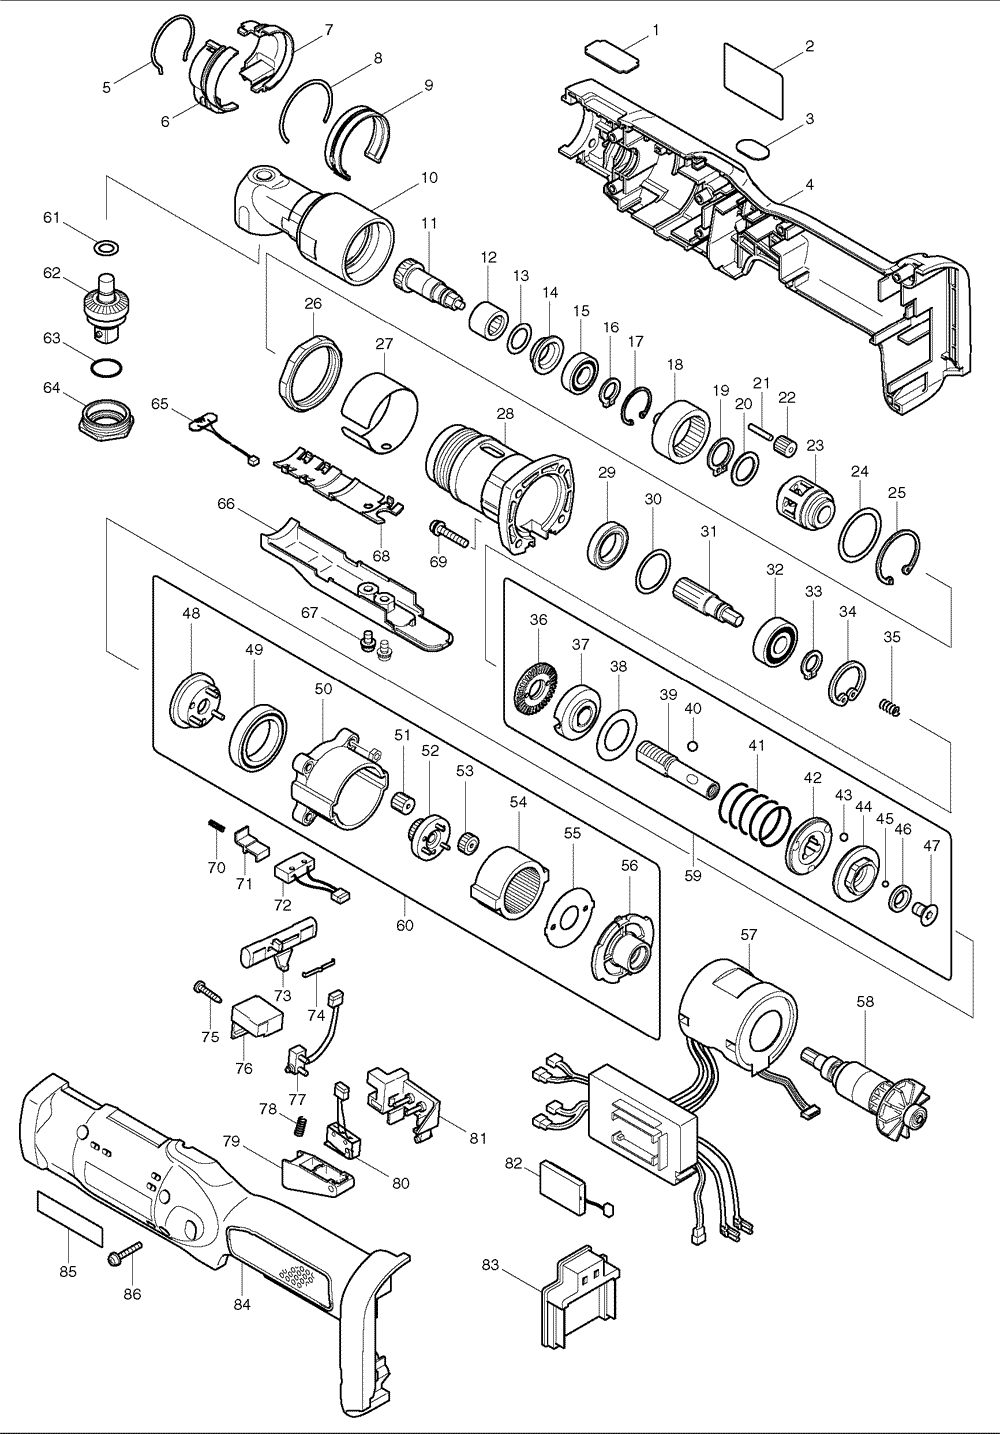 torque screwdriver diagram